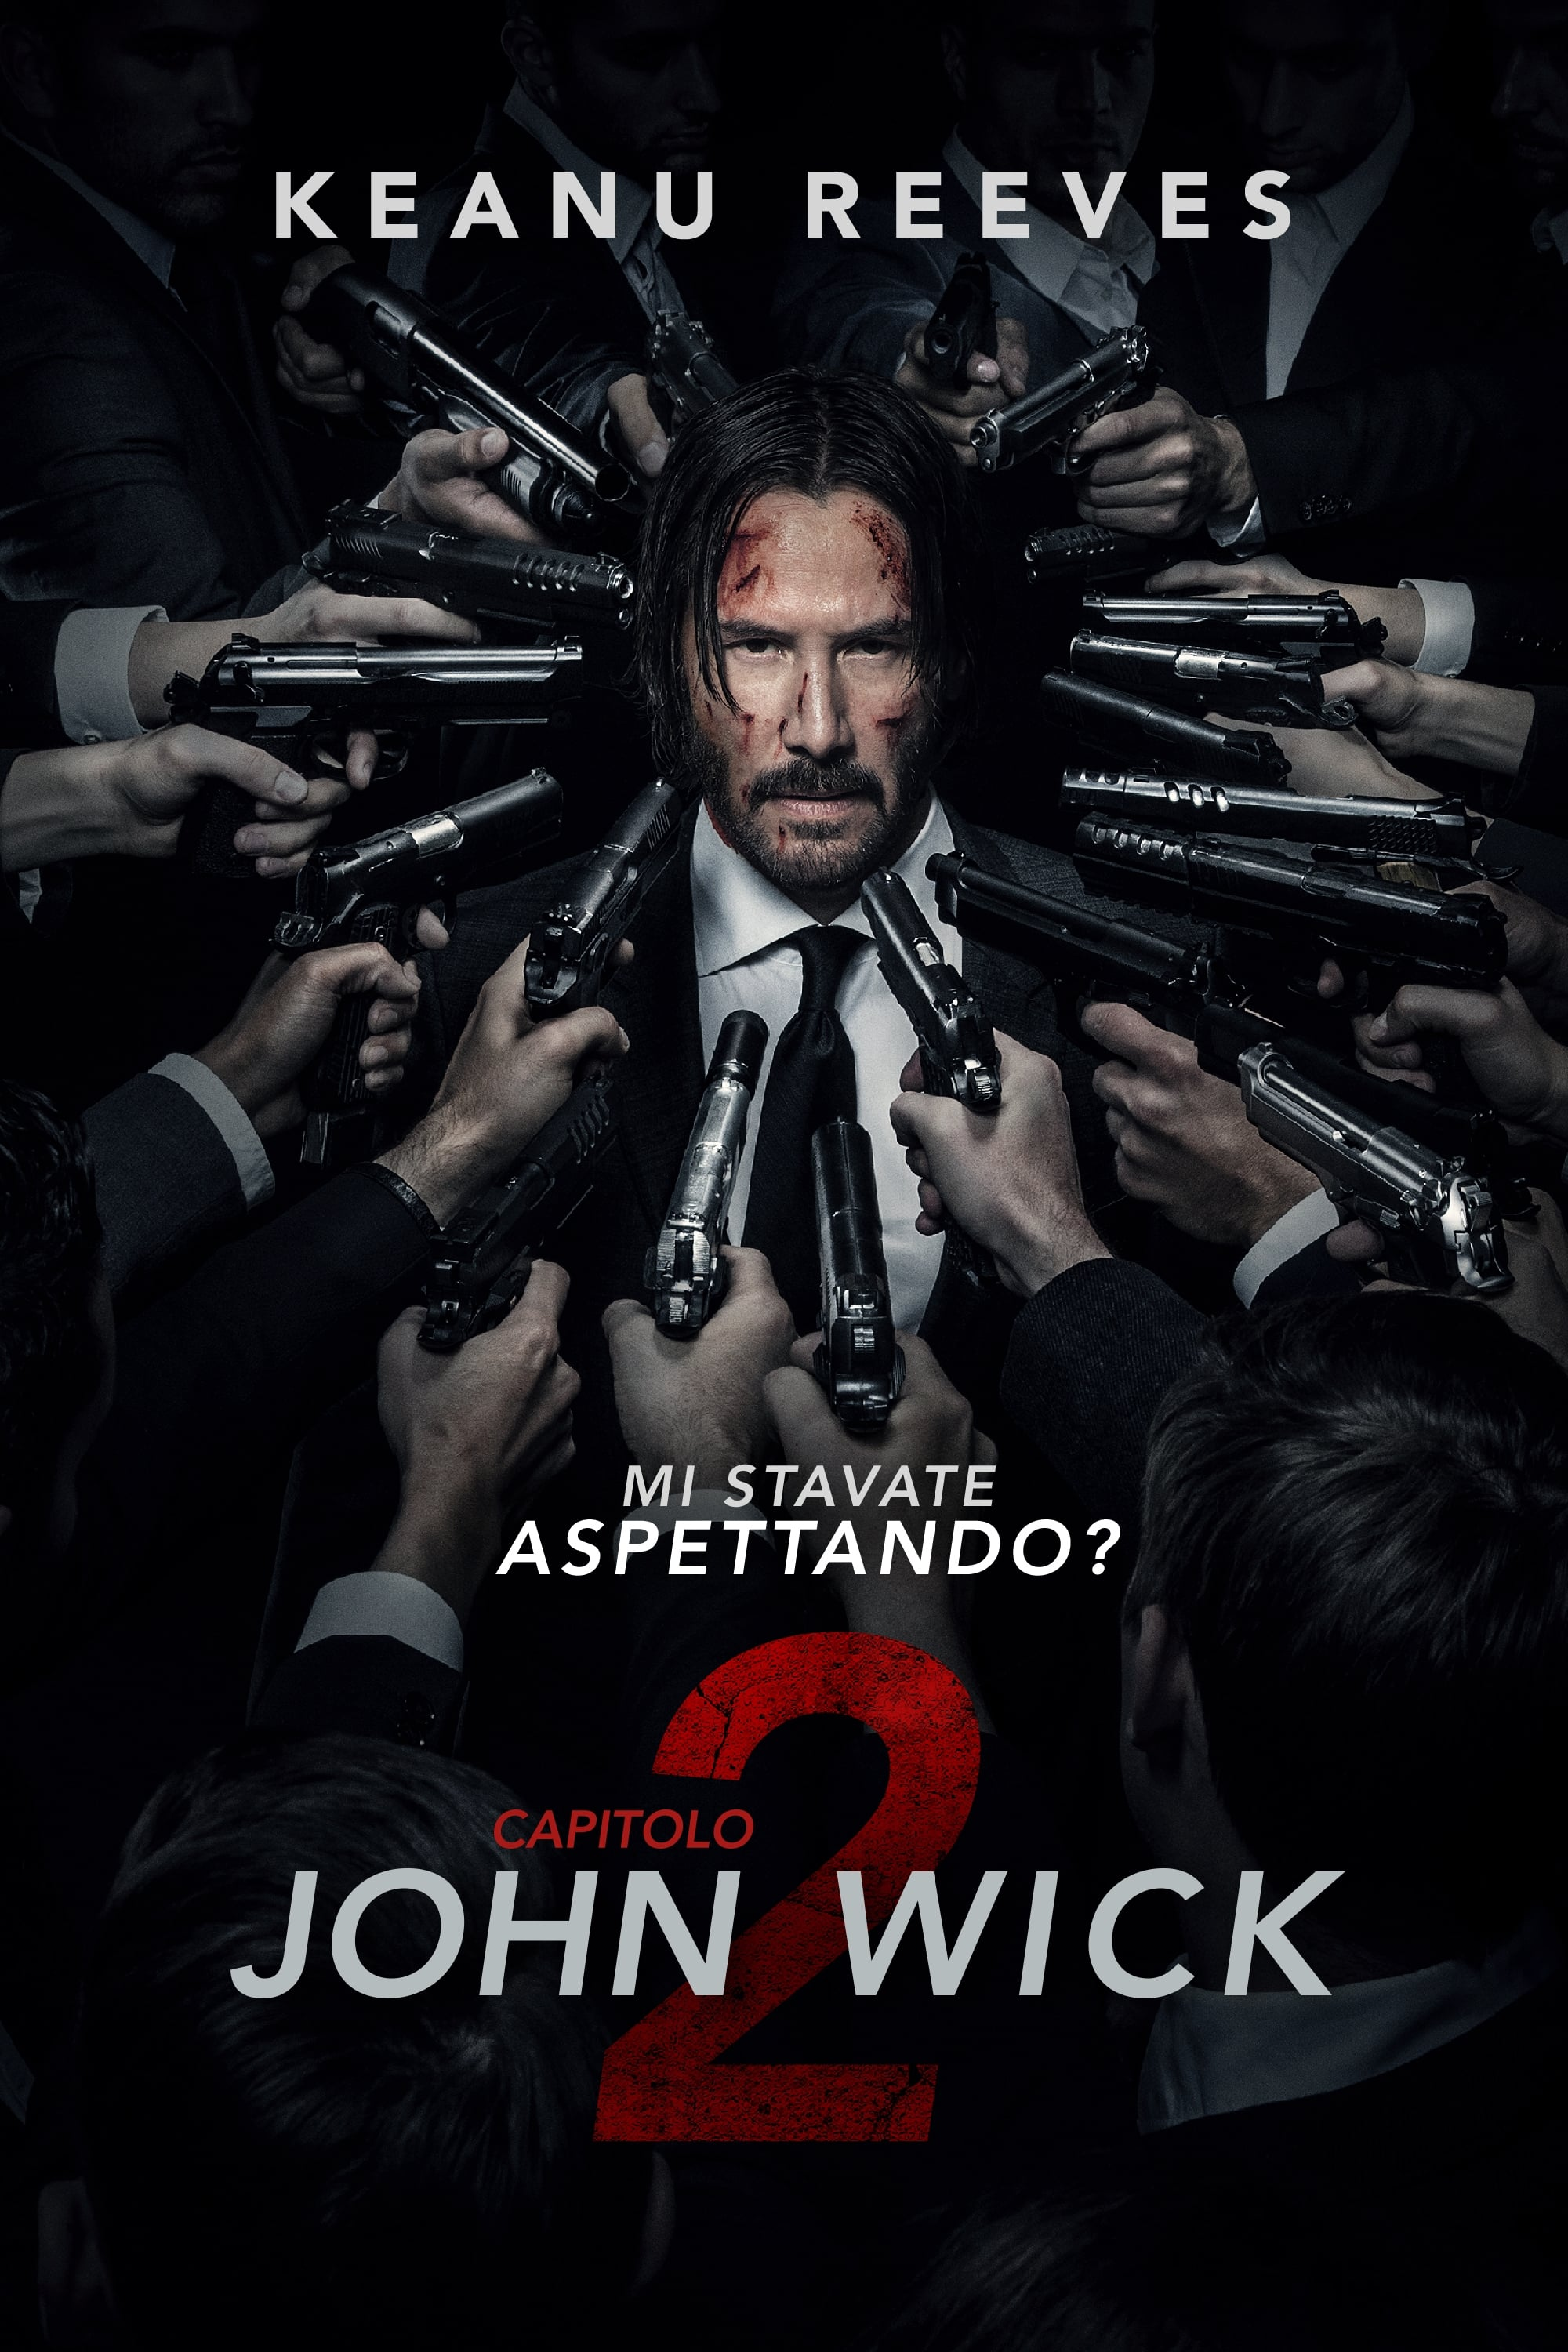 John Wick in streaming